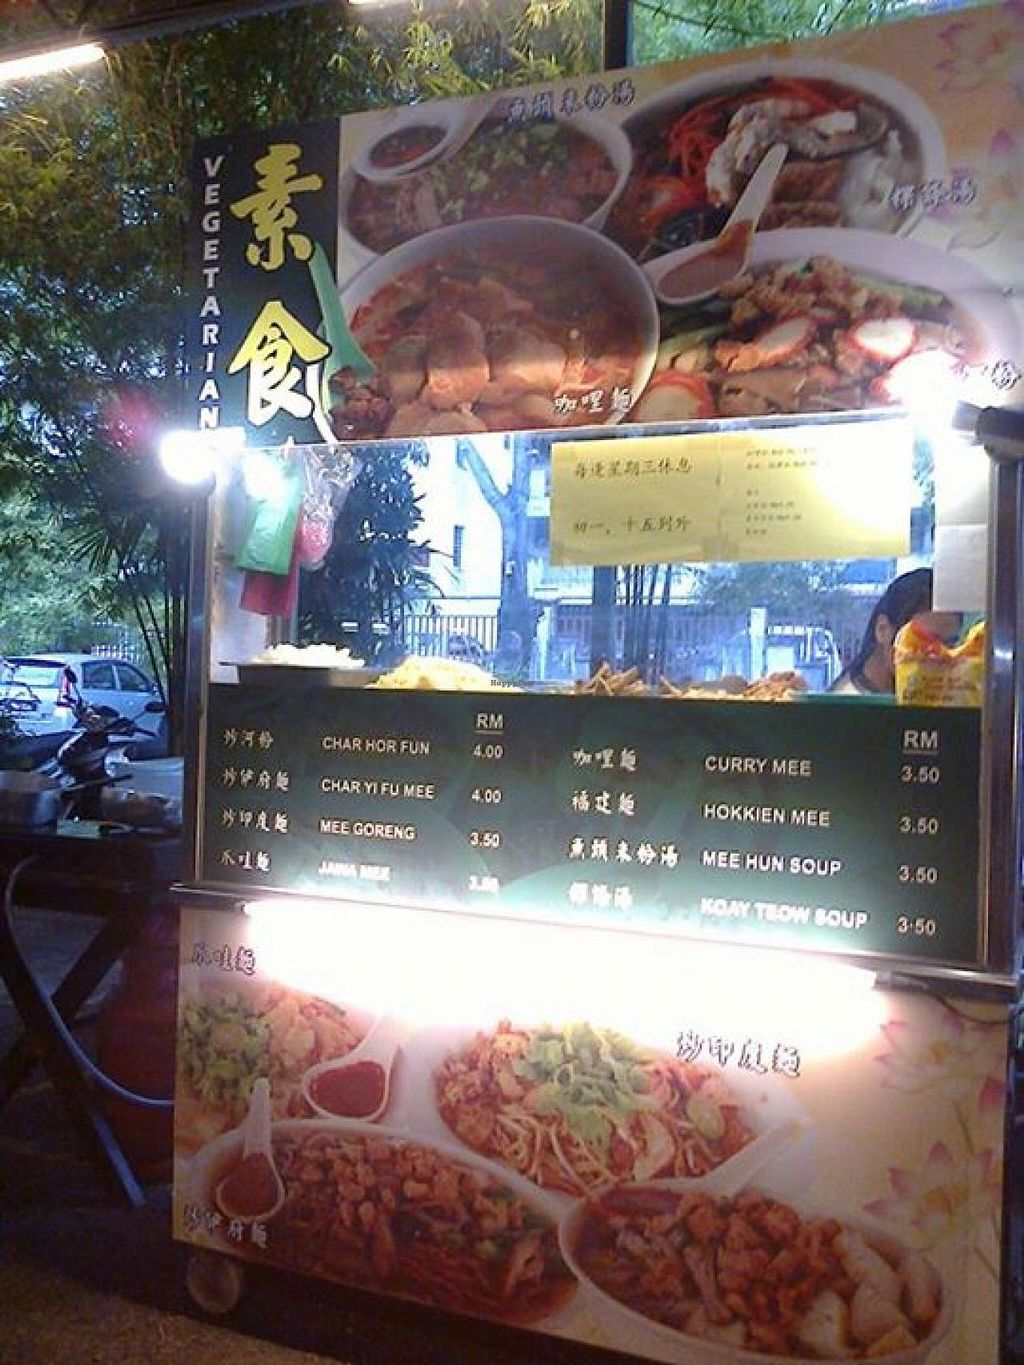 "Photo of Kuta Bali Cafe - Vegetarian Stall  by <a href=""/members/profile/walter007"">walter007</a> <br/>stall <br/> December 7, 2014  - <a href='/contact/abuse/image/53625/87463'>Report</a>"